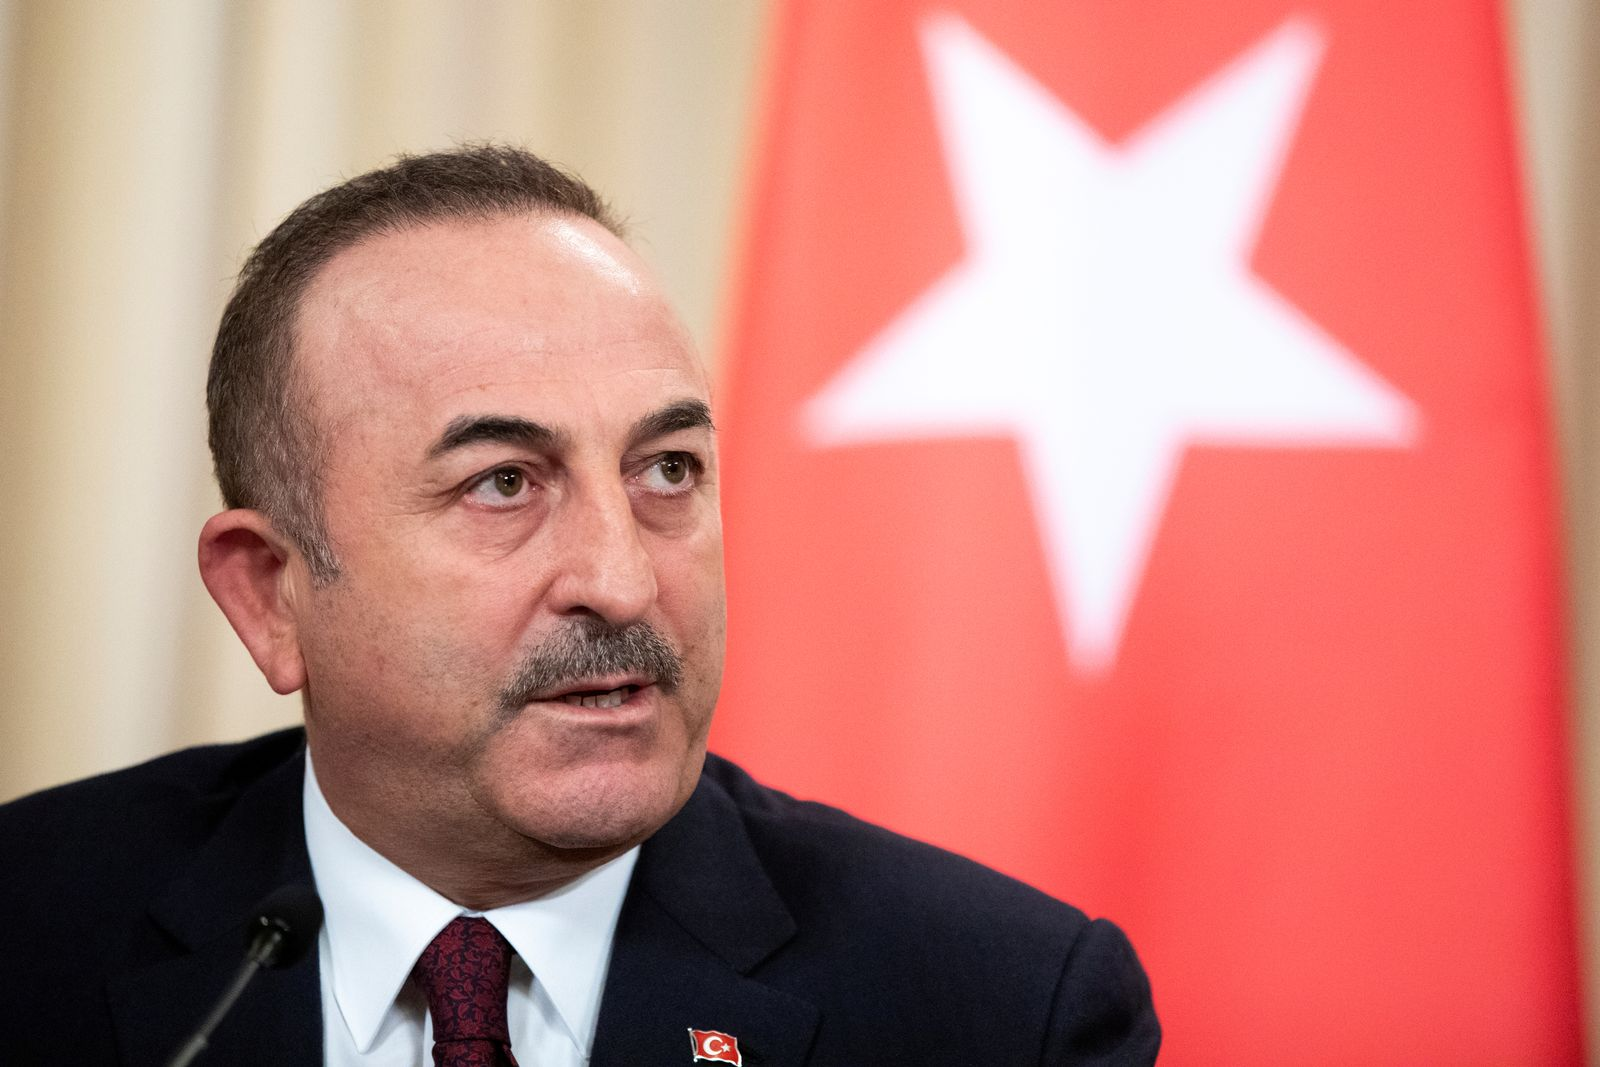 Turkish Foreign Minister Mevlut Cavusoglu speaks during a joint news conference following talks with Russian Foreign Minister Sergei Lavrov in Moscow